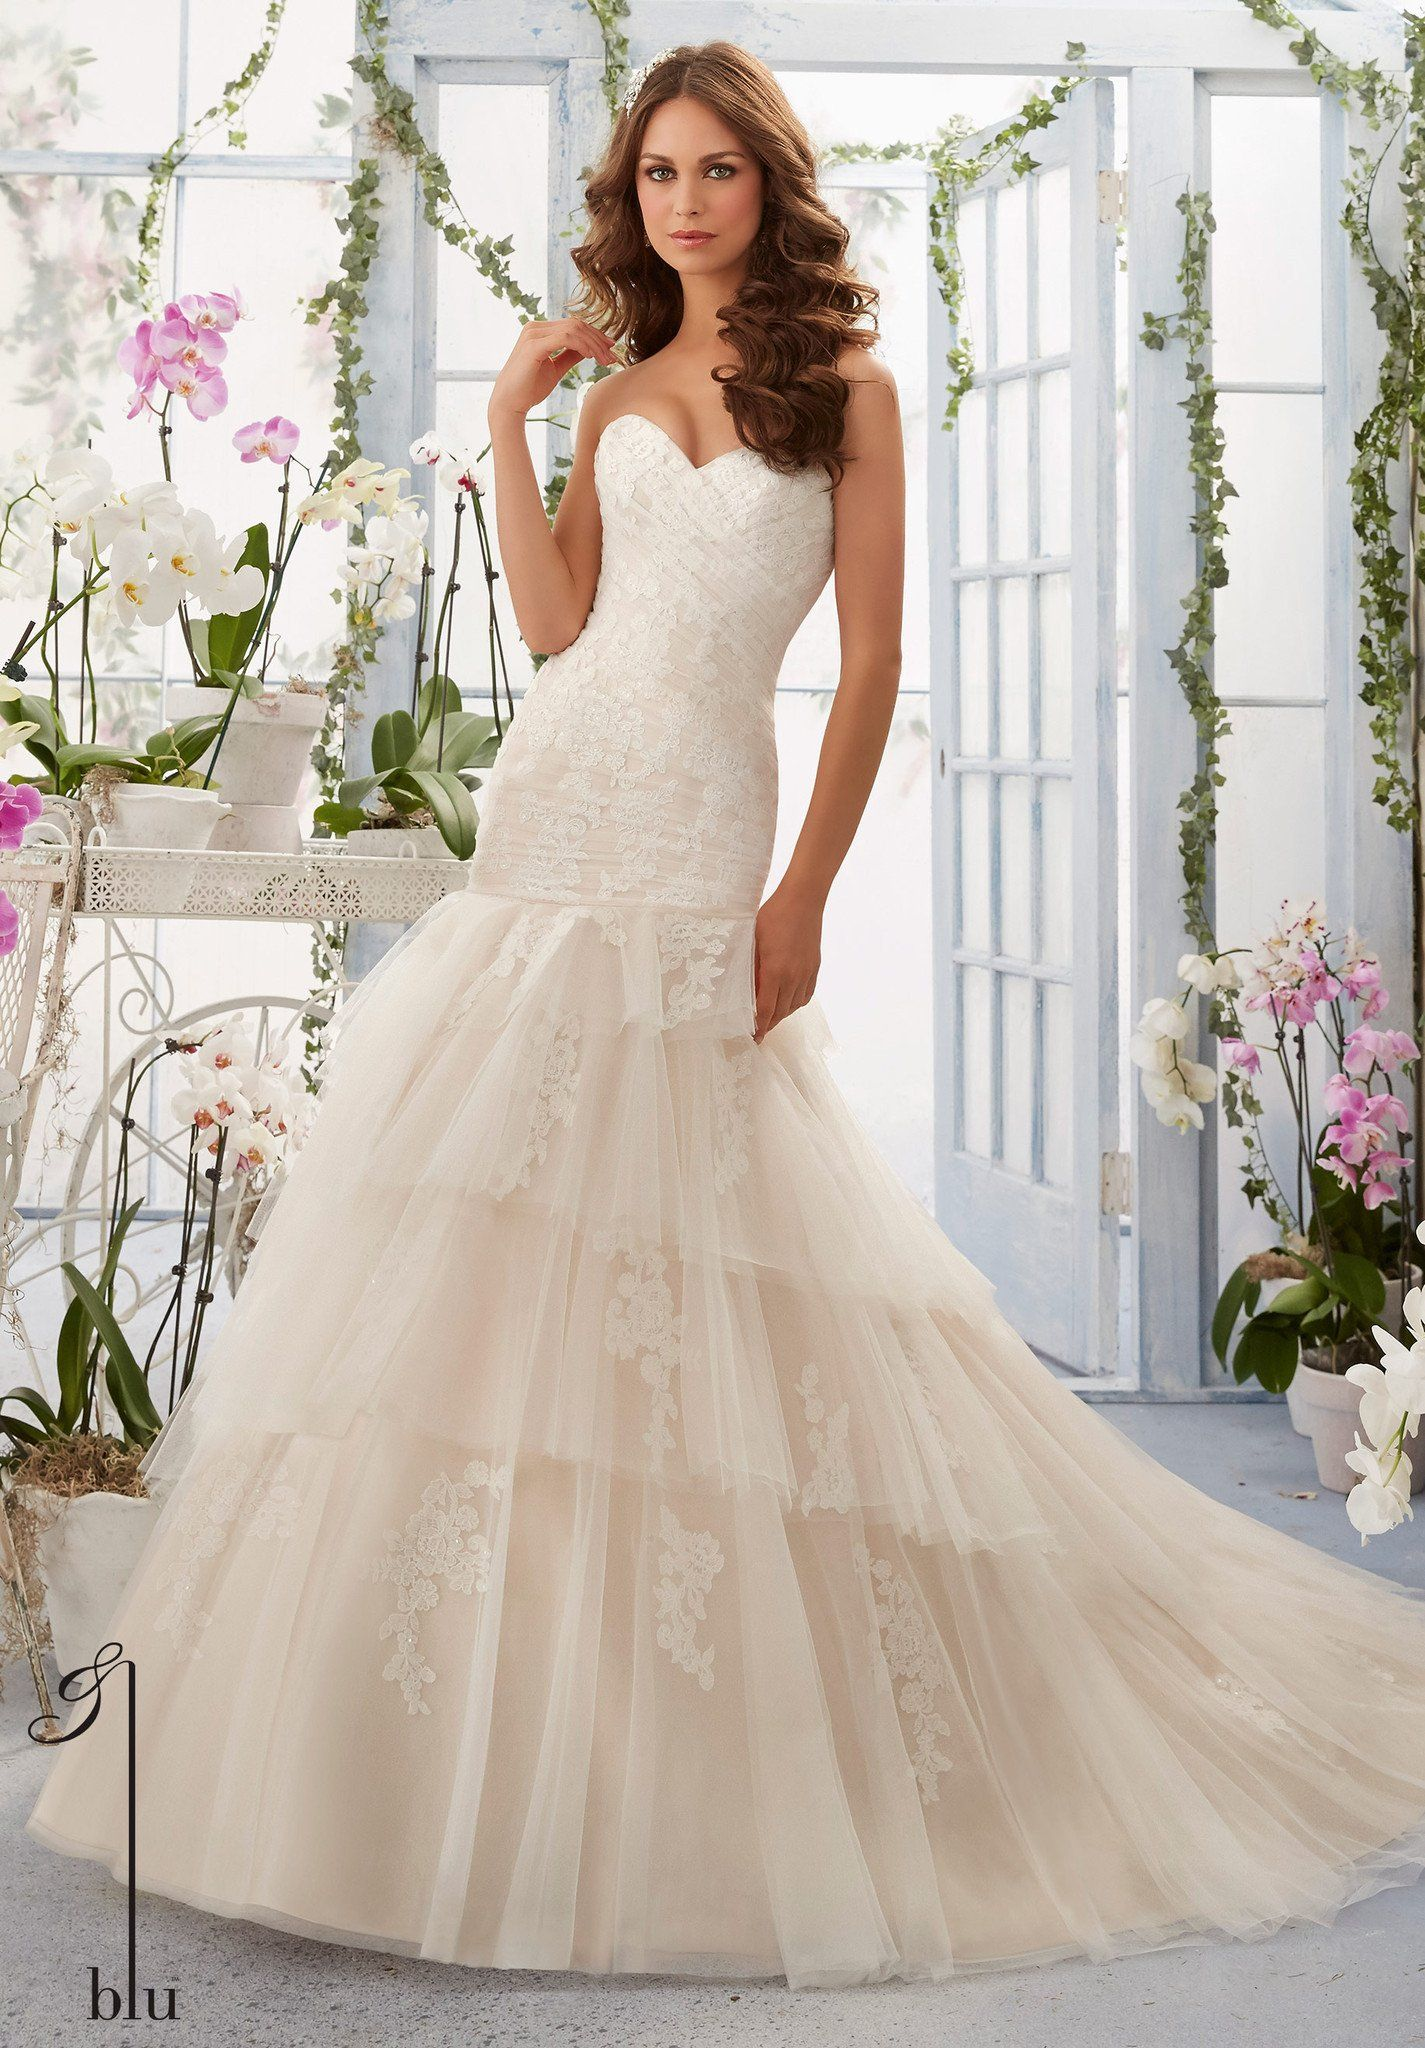 Where can i rent a wedding dress  Blog  Bridal gowns Gowns and Overlays